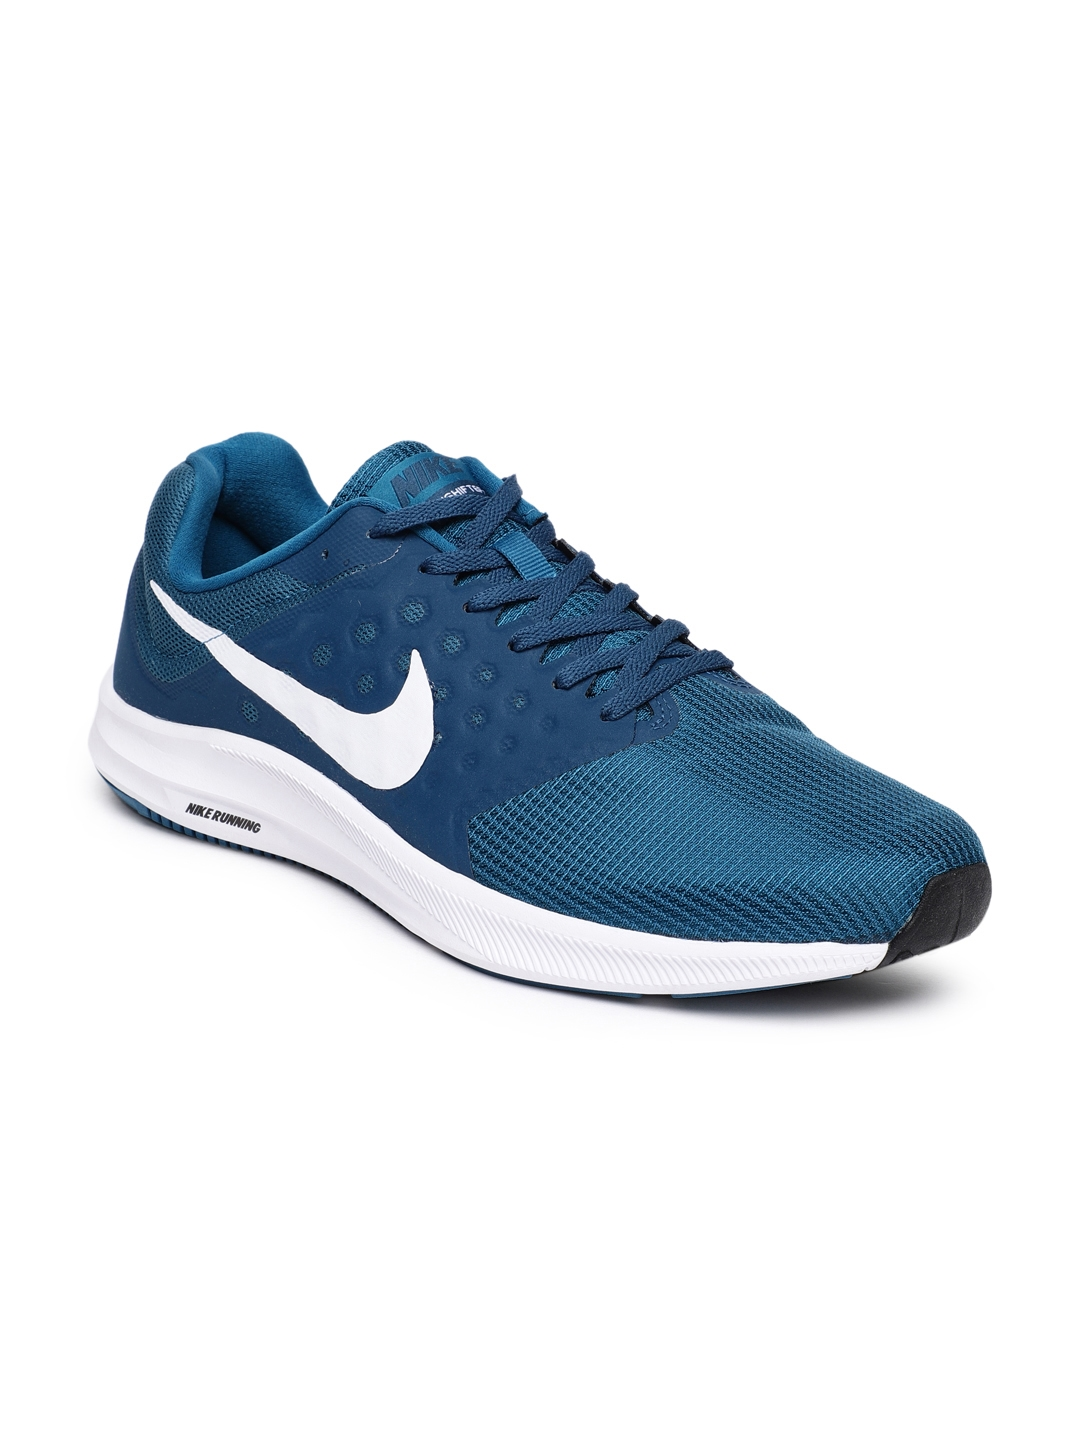 92d5de4ee9ed Buy Nike Men Blue Downshifter 7 Running Shoes - Sports Shoes for Men ...